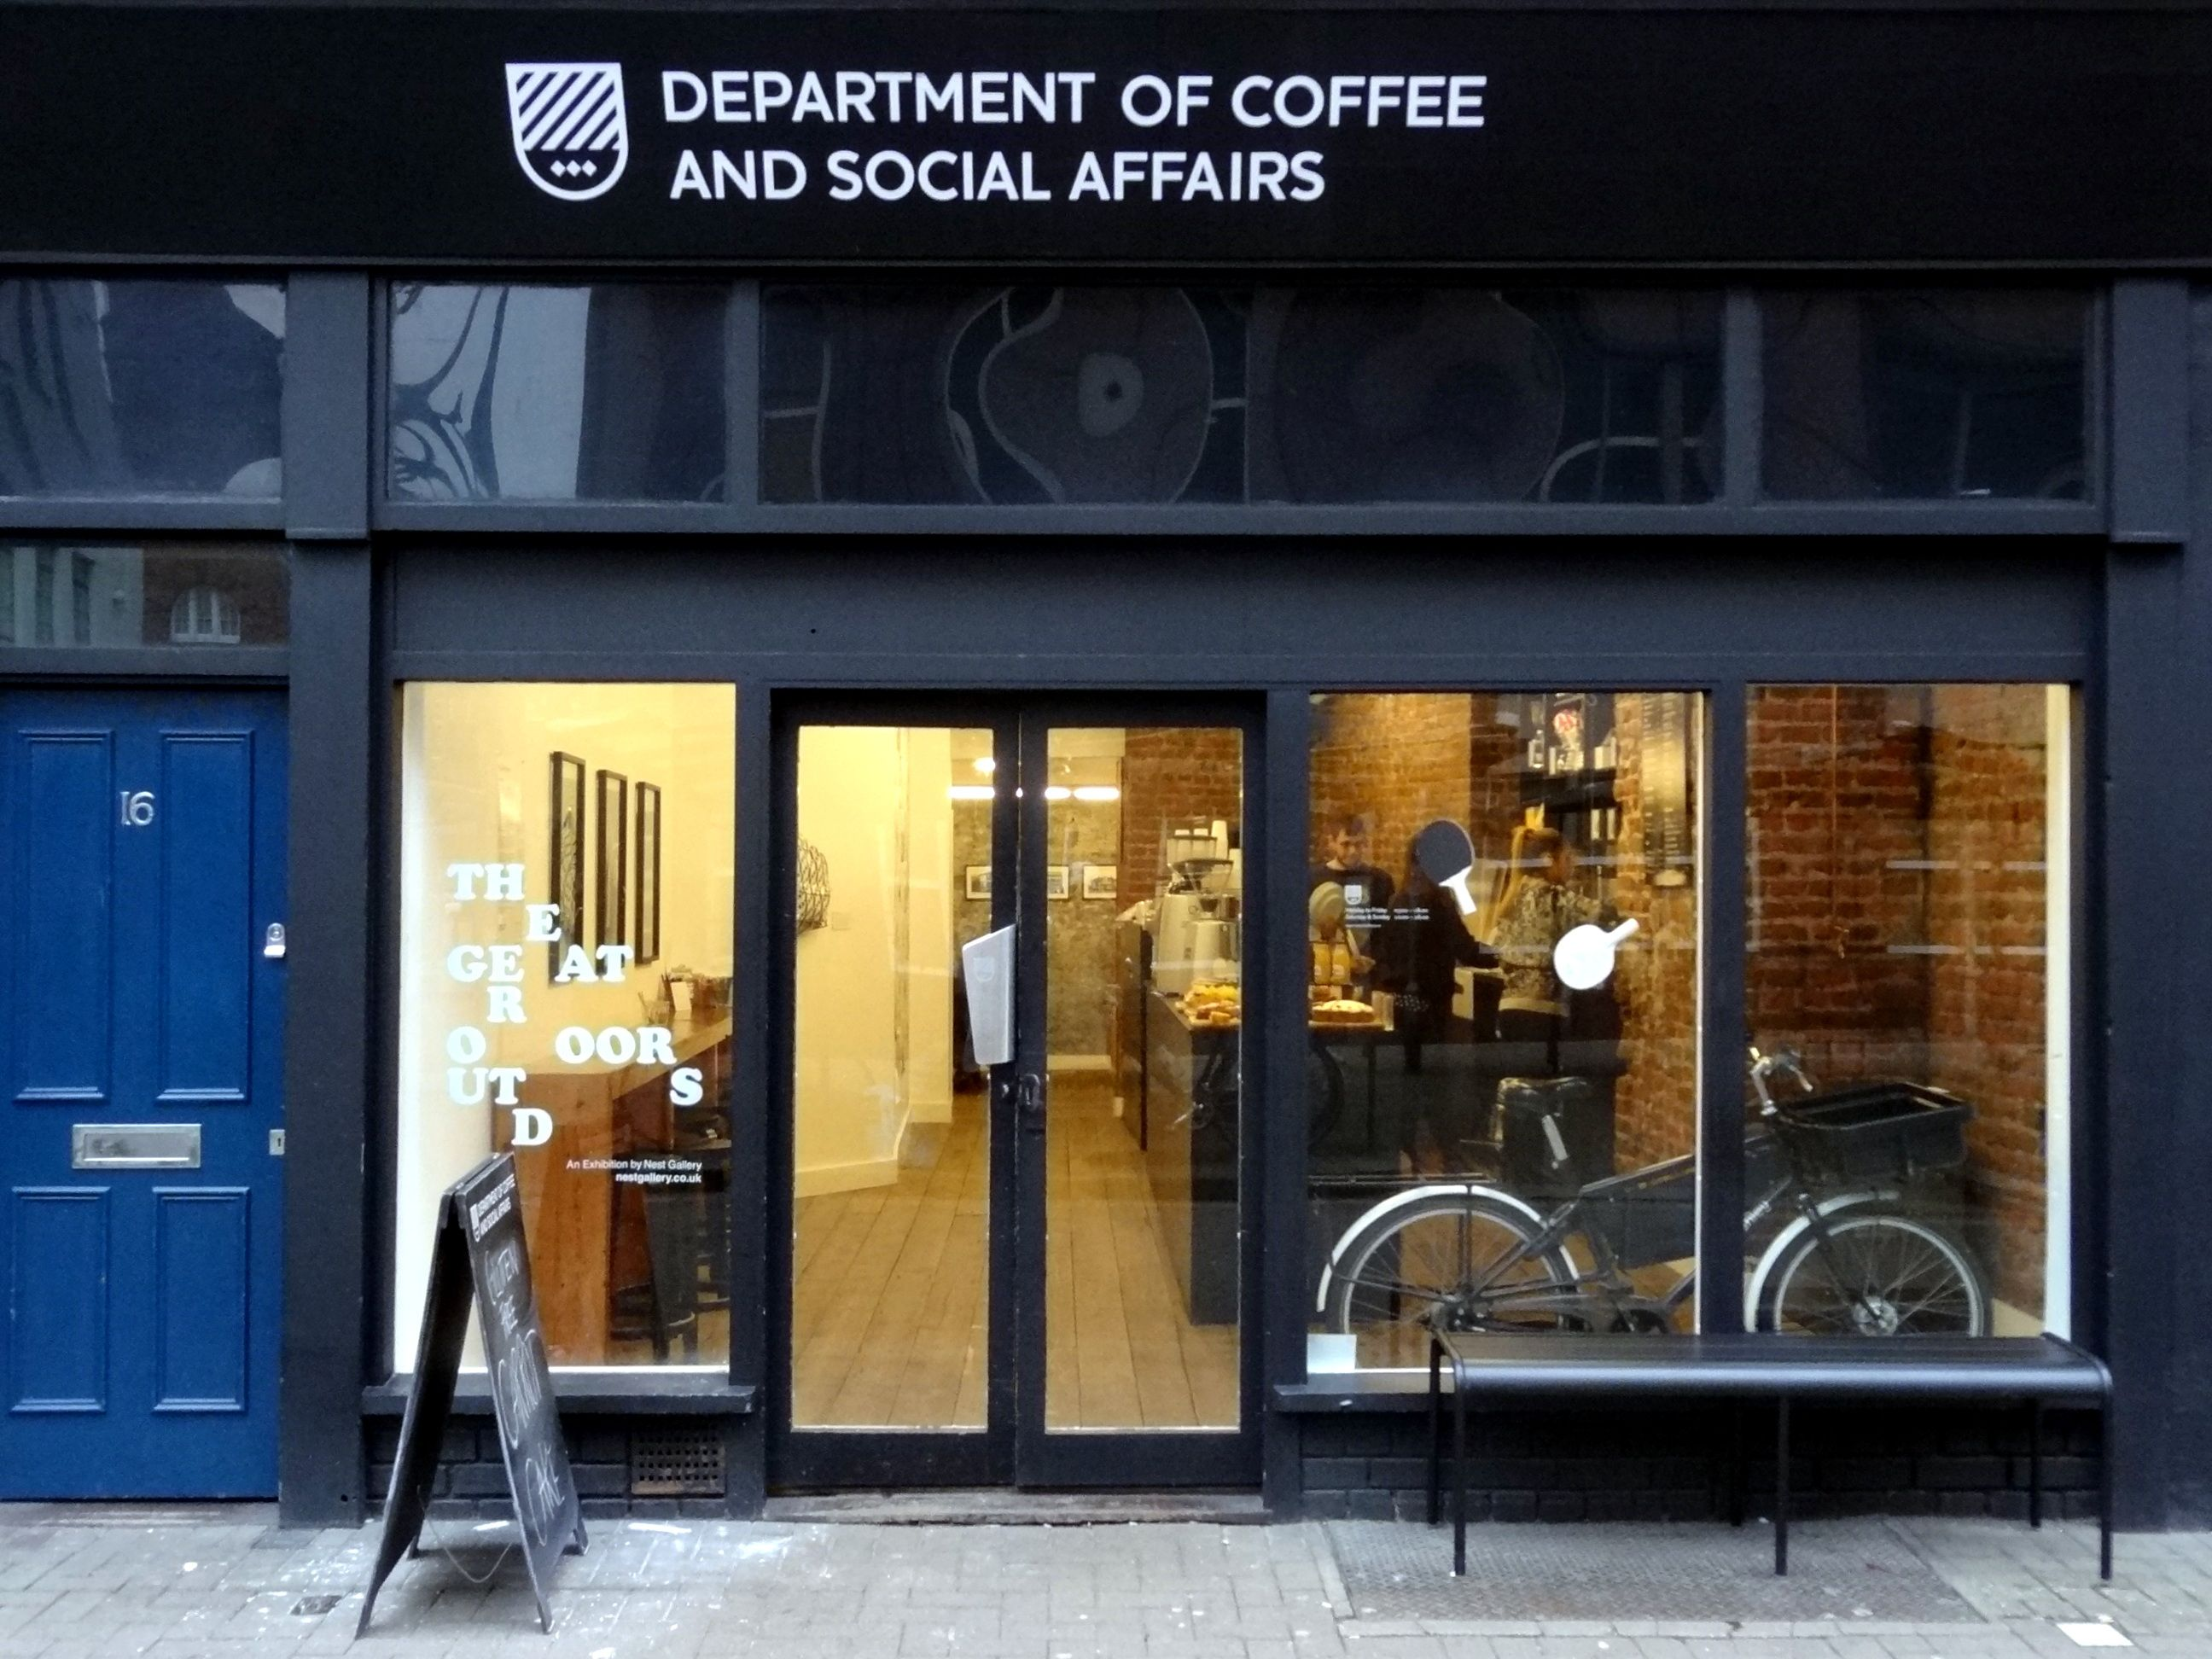 Department of coffee and social affairs